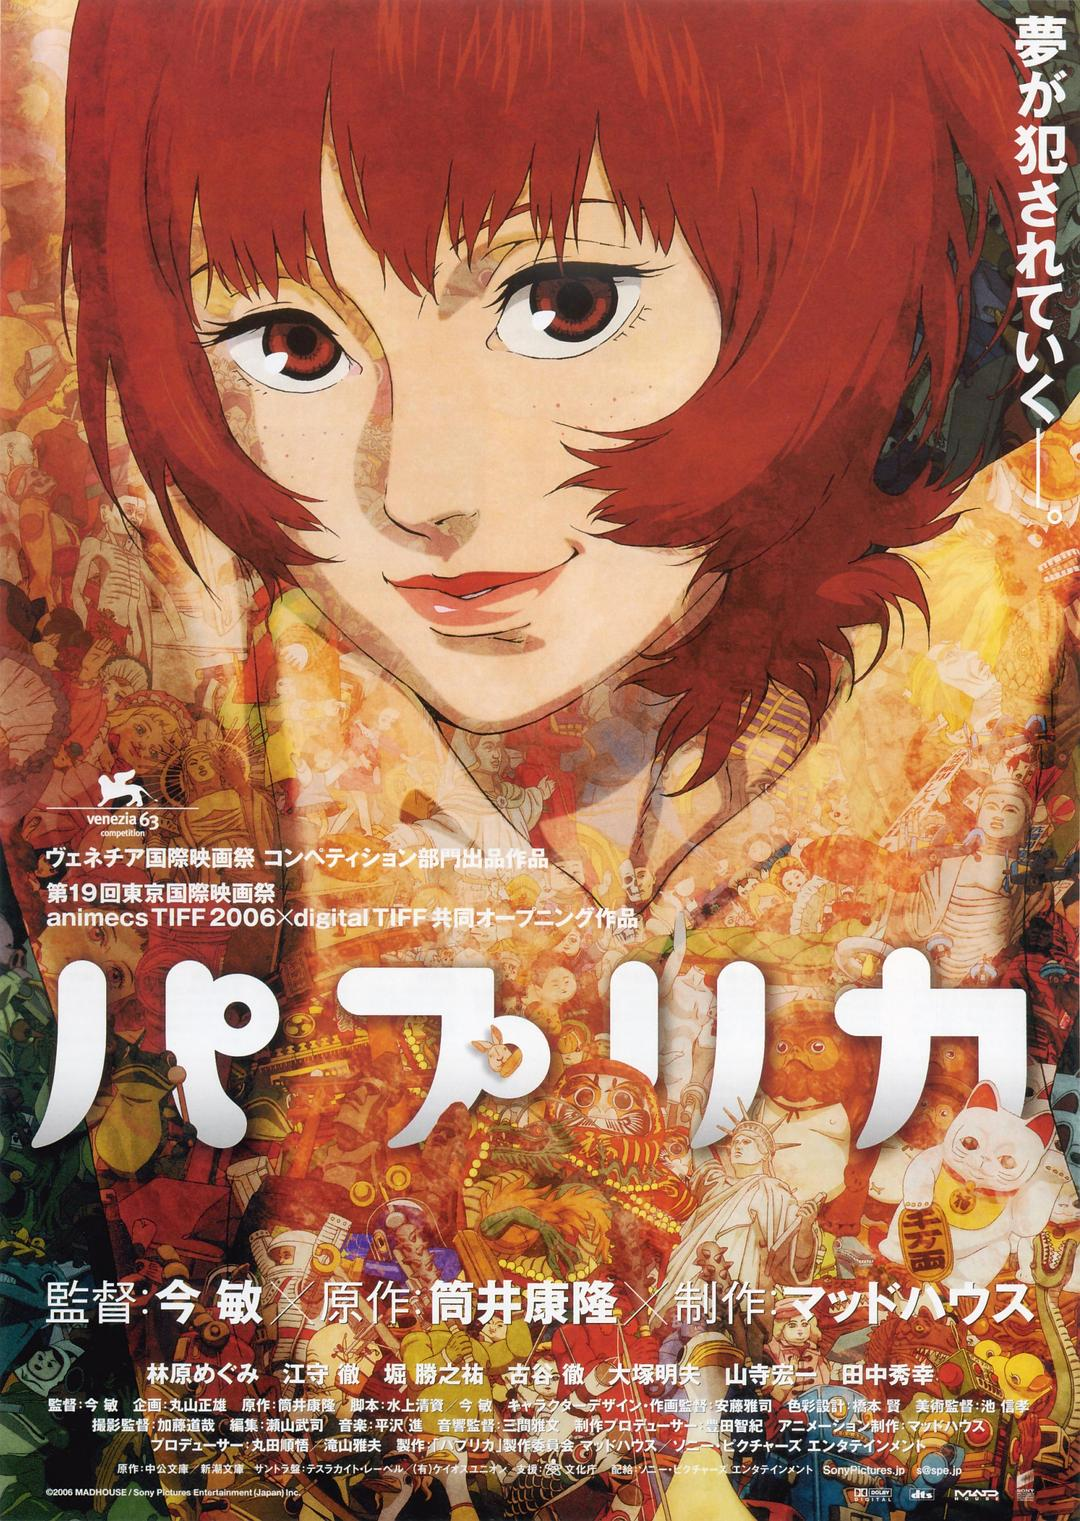 悠悠MP4_MP4电影下载_红辣椒 Paprika.2006.JAPANESE.1080p.BluRay.x264.DTS-FGT 9.16GB